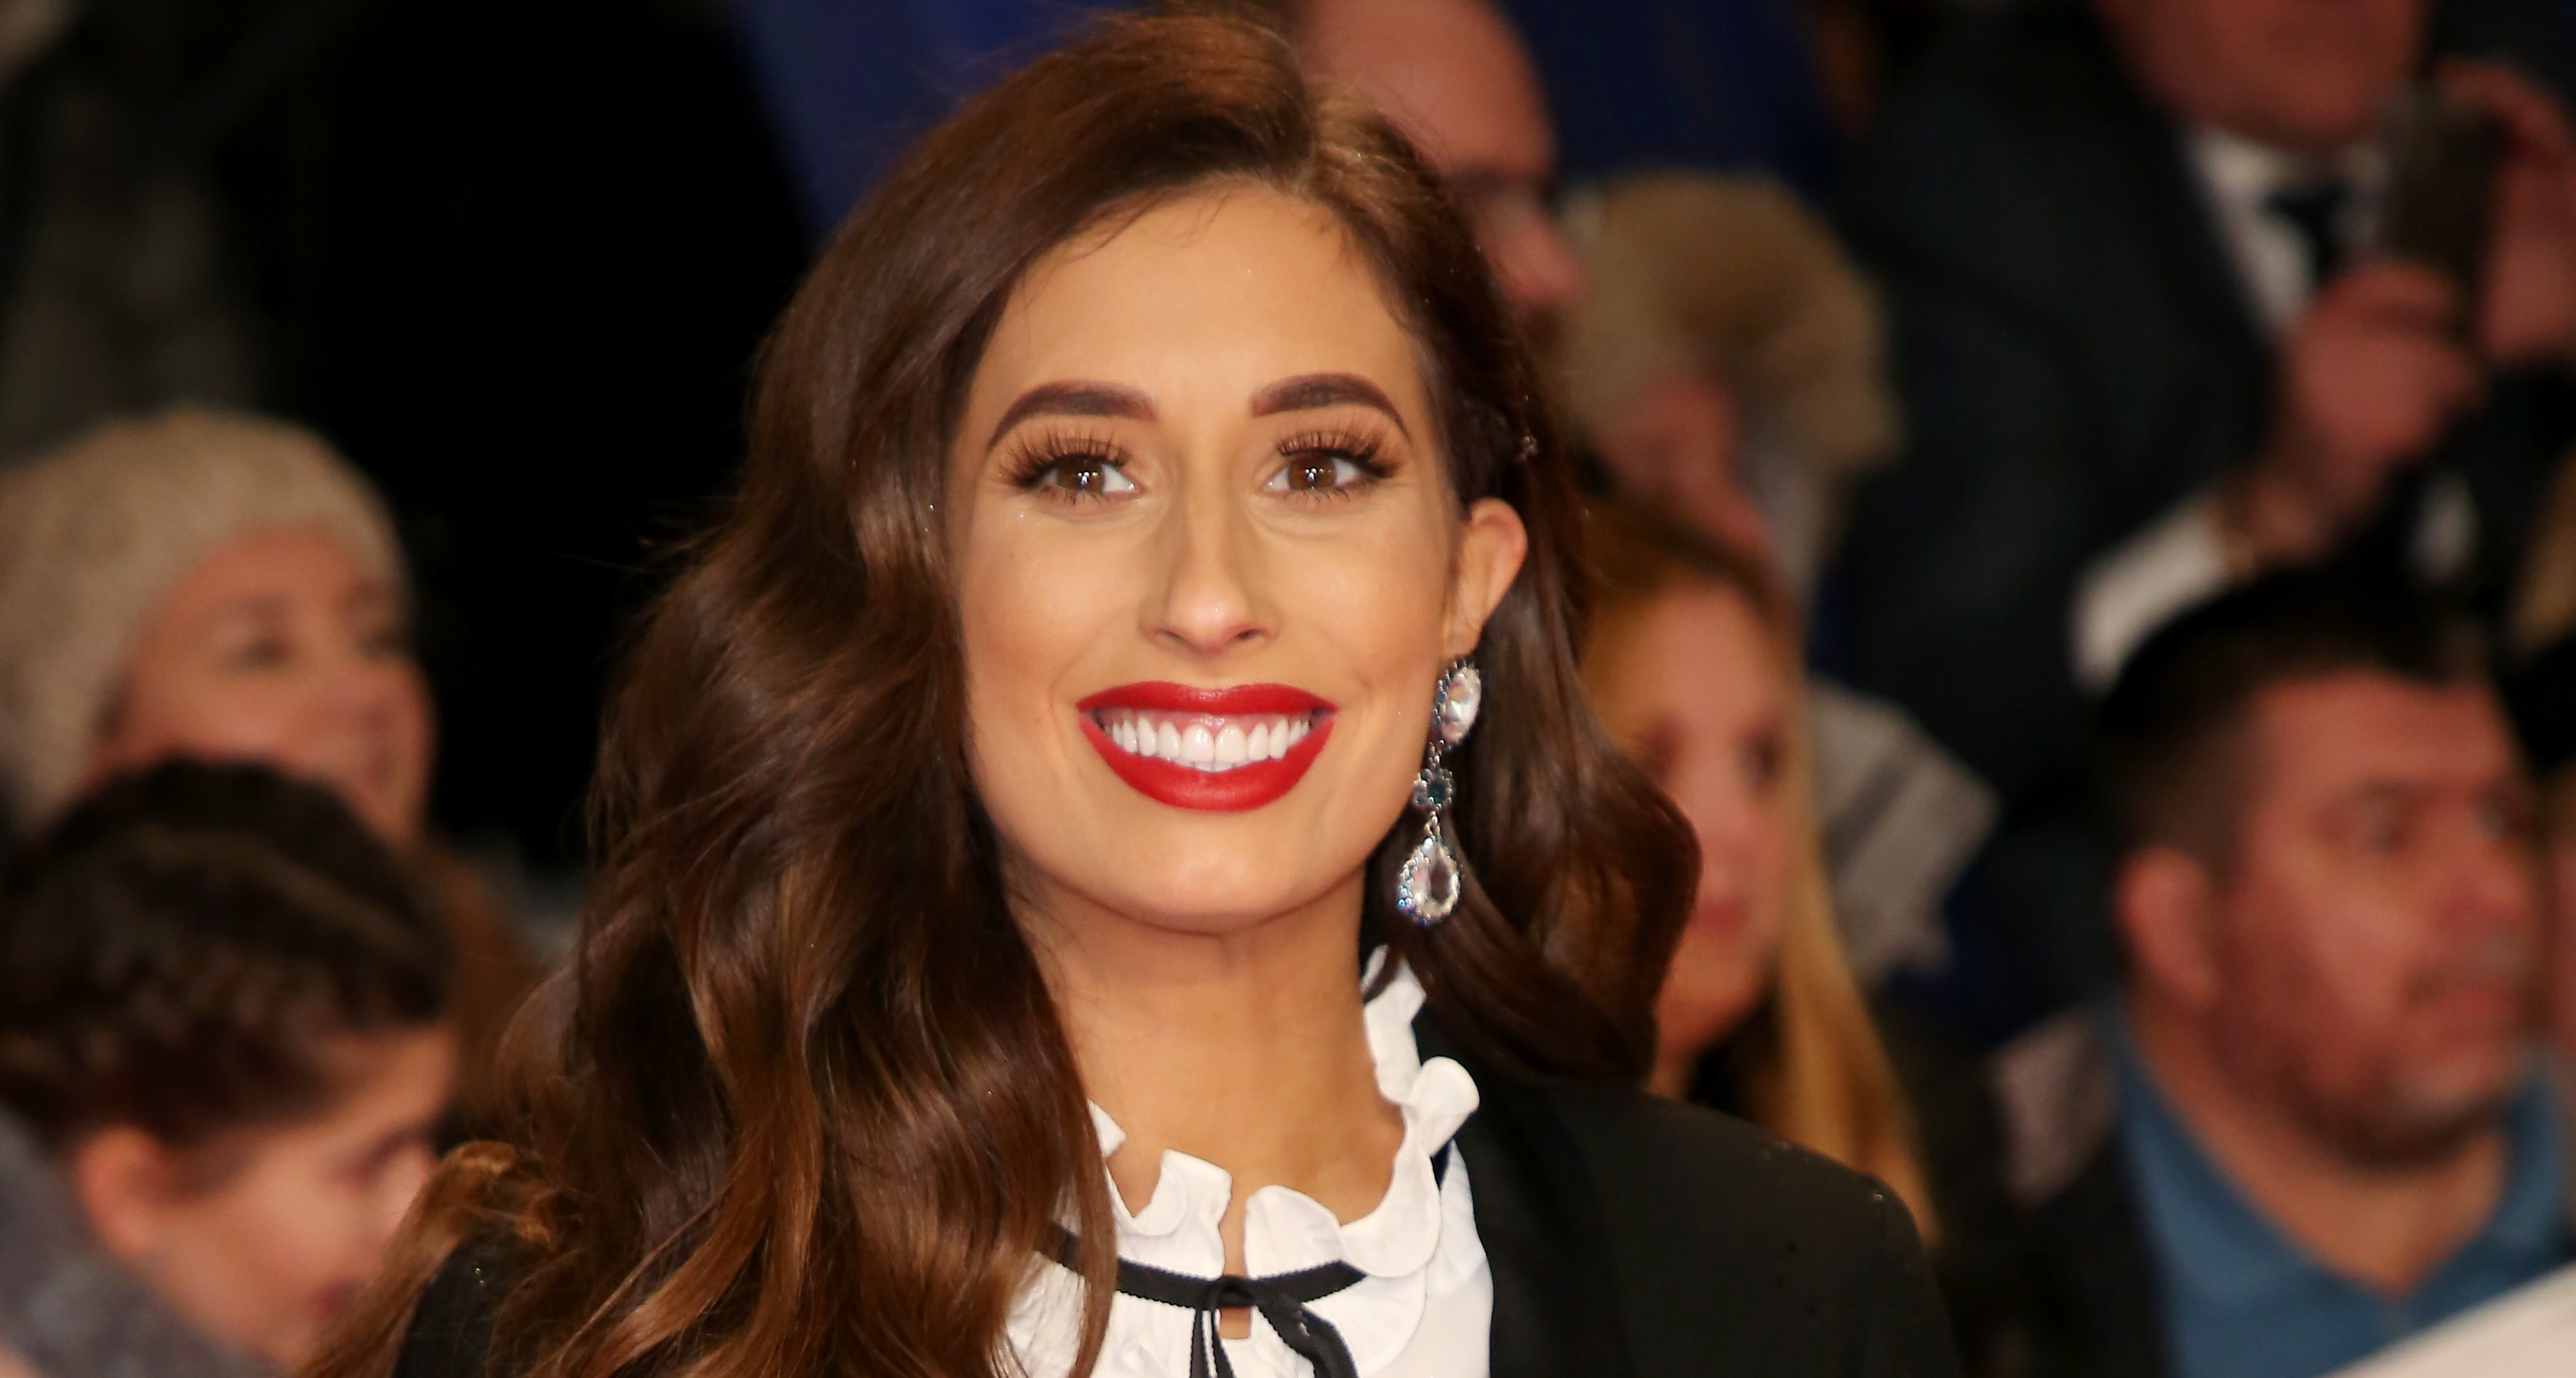 Stacey Solomon addresses cellulite and 'leaking boobs' in inspiring maternal message